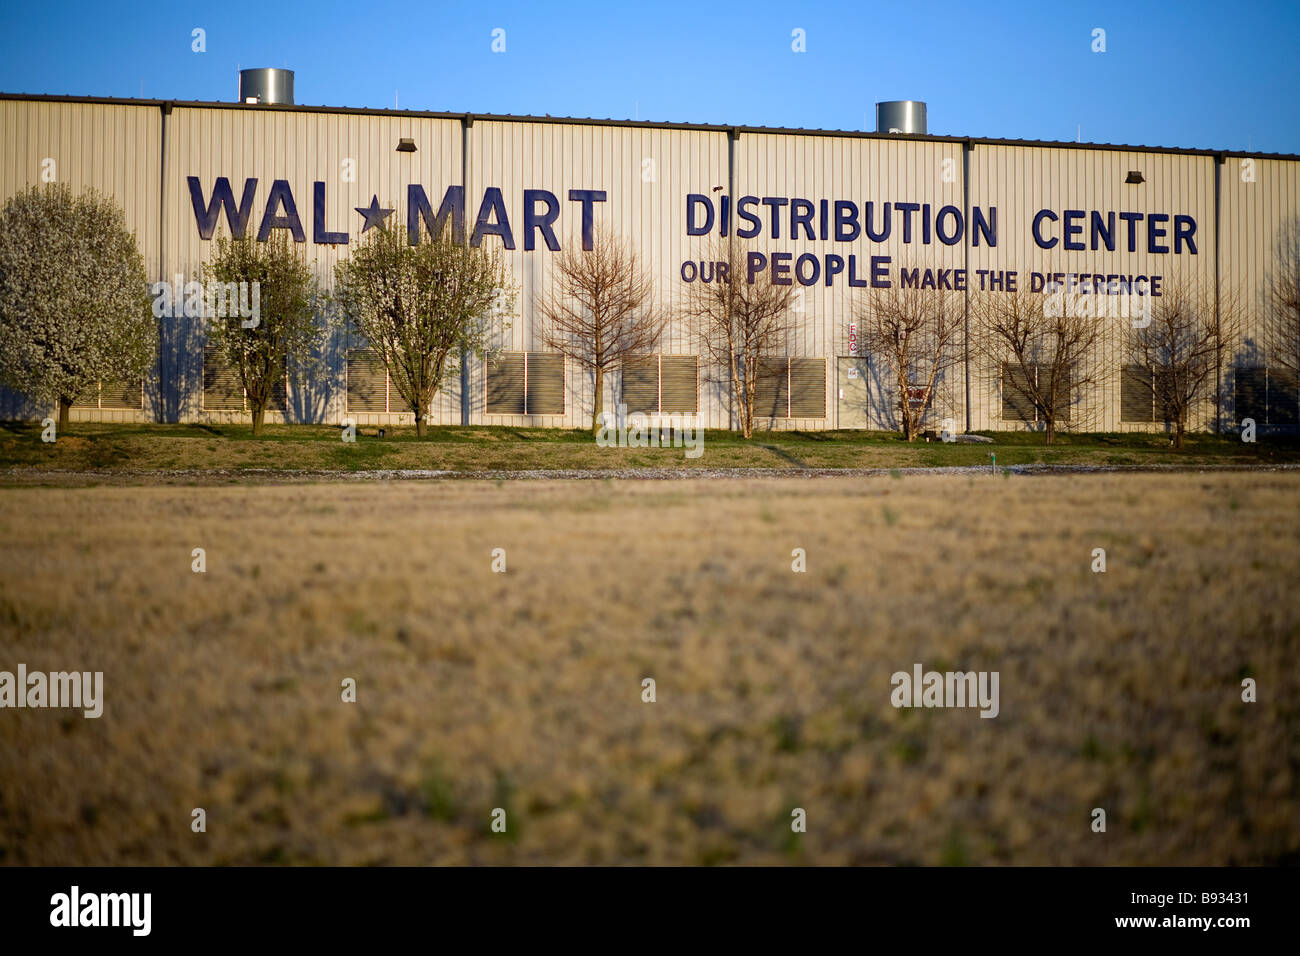 walmart distribution center no 6094 in bentonville arkansas usa stock image